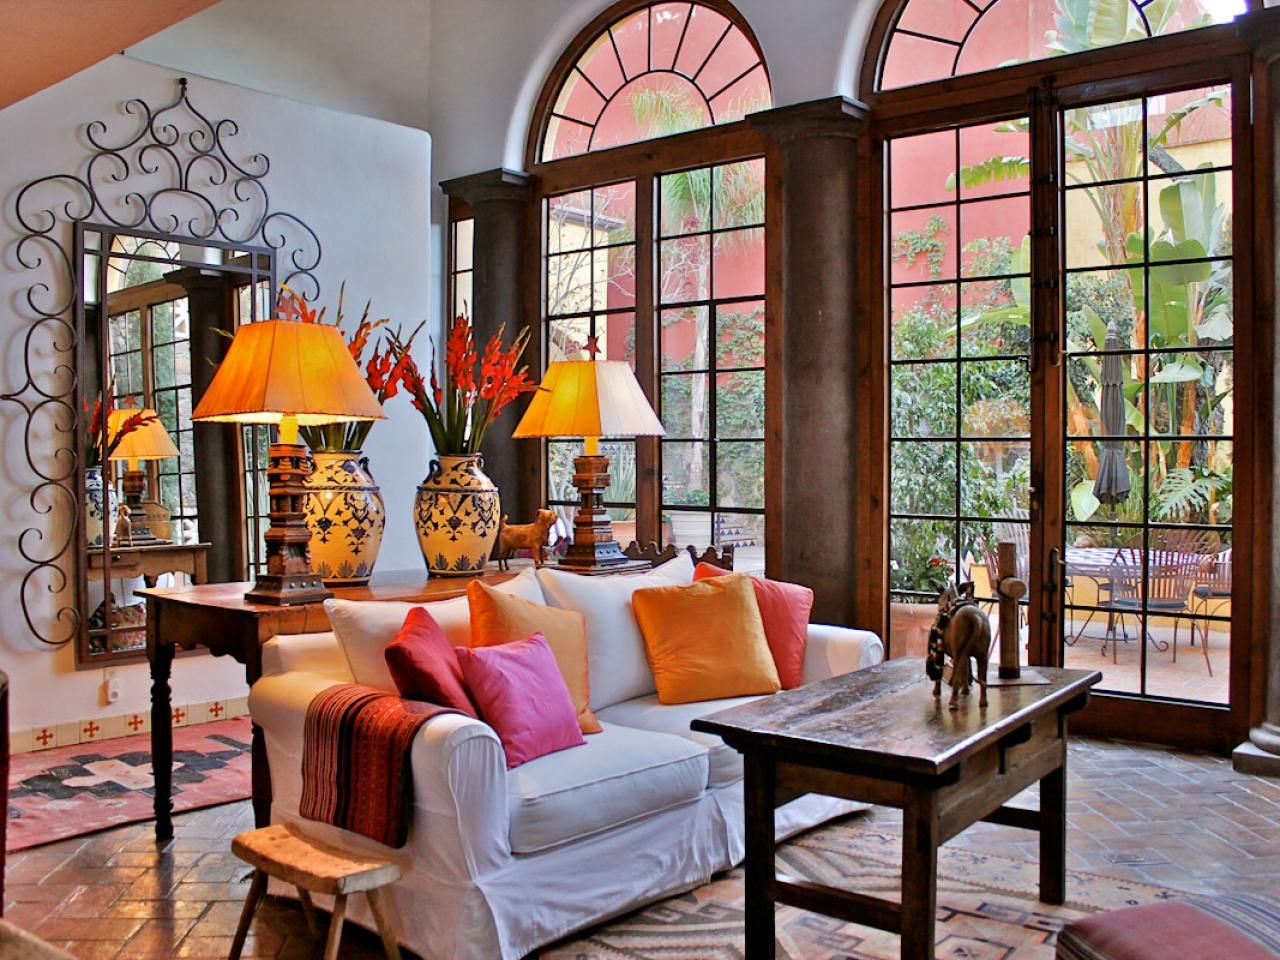 Room color ideas for living room - 10 Spanish Inspired Rooms